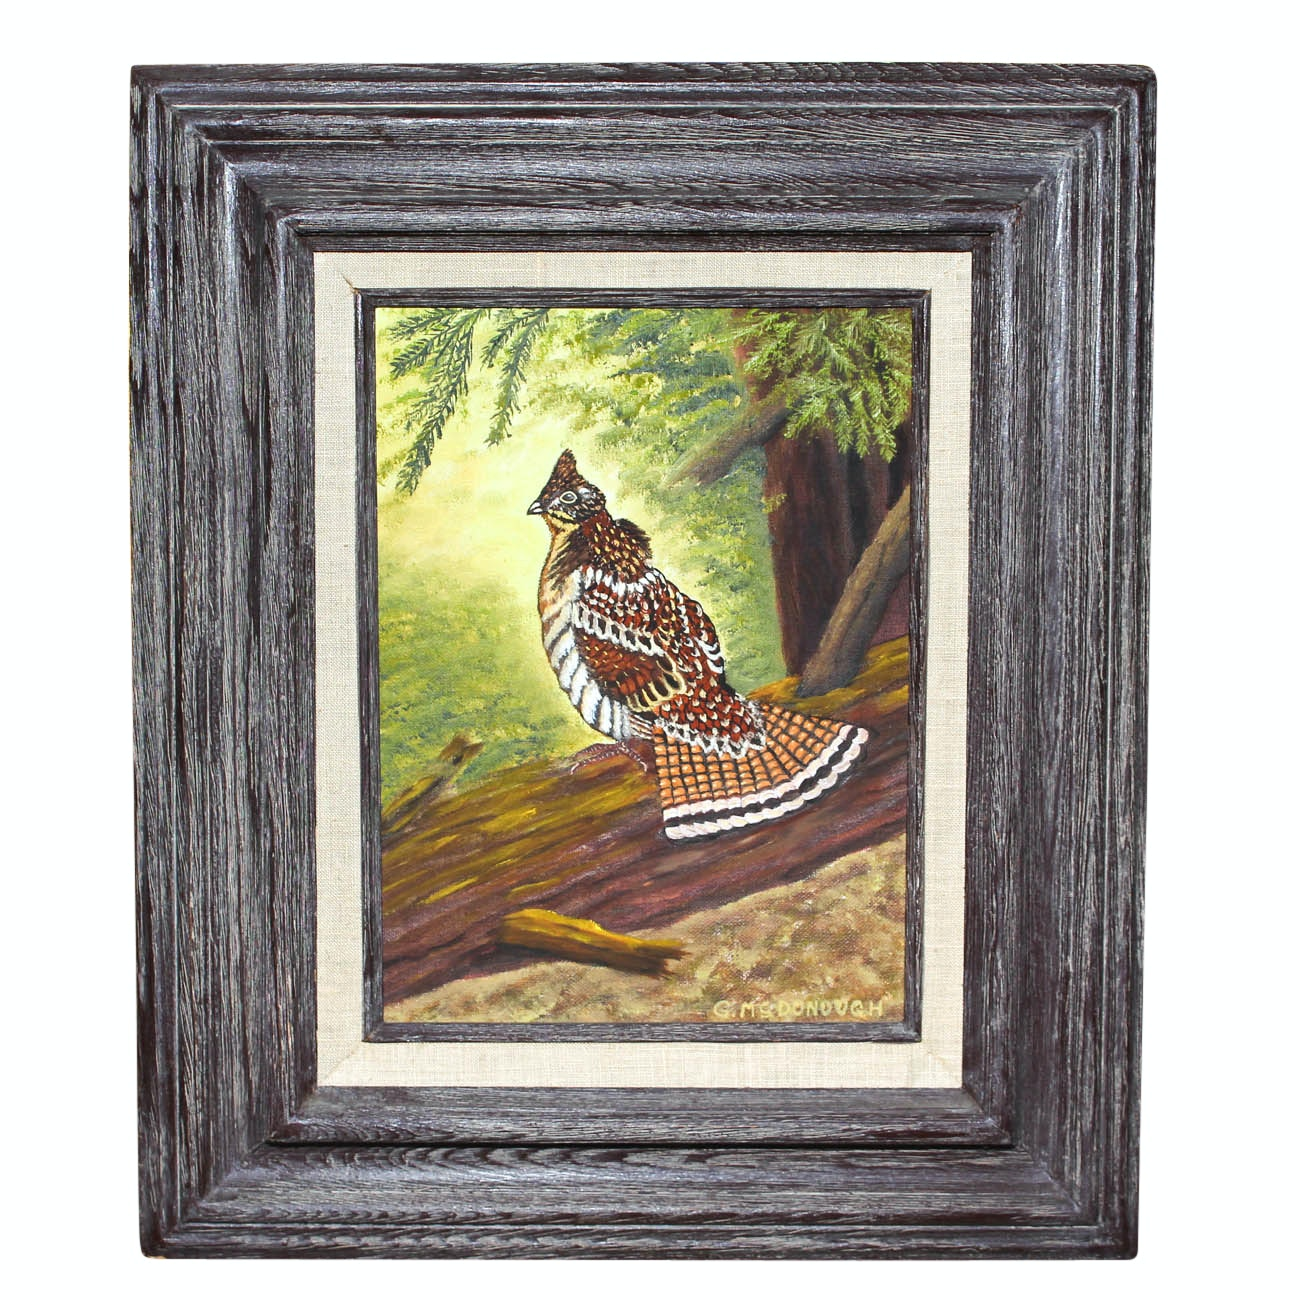 G. McDonough Oil Painting of Bird